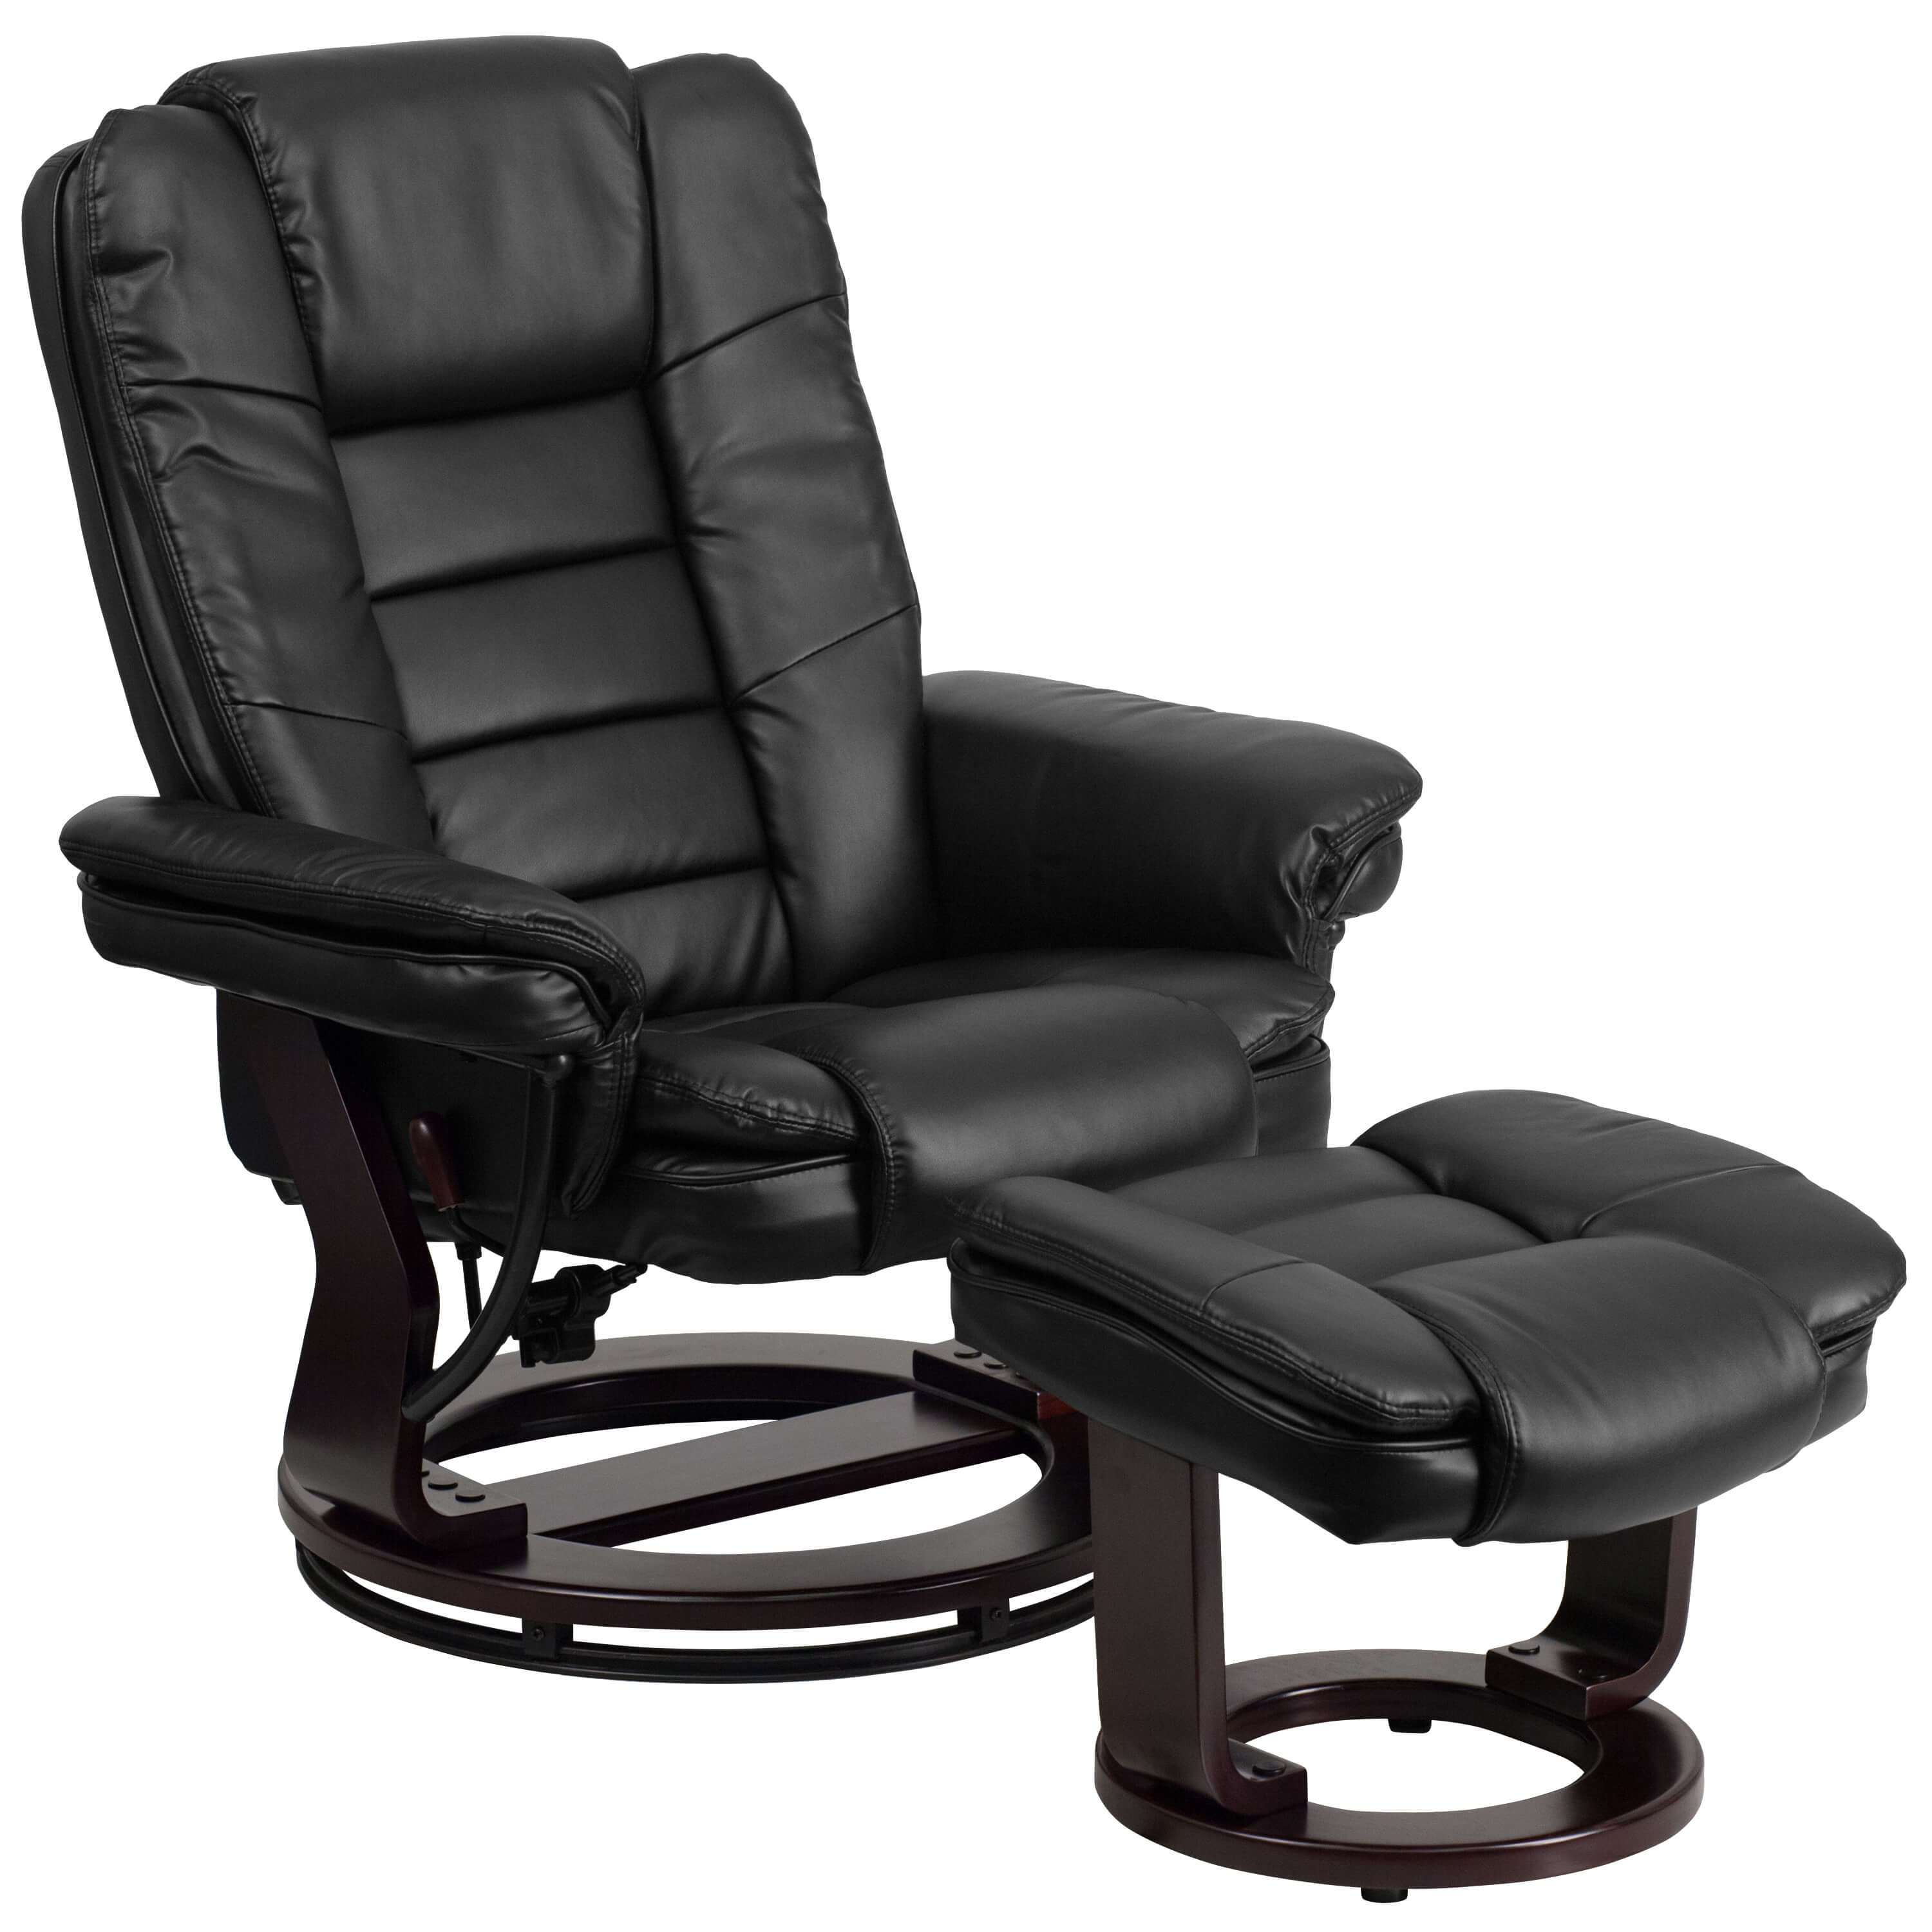 Swivel recliner swivel recliner CUB BT 7818 BK GG FLA